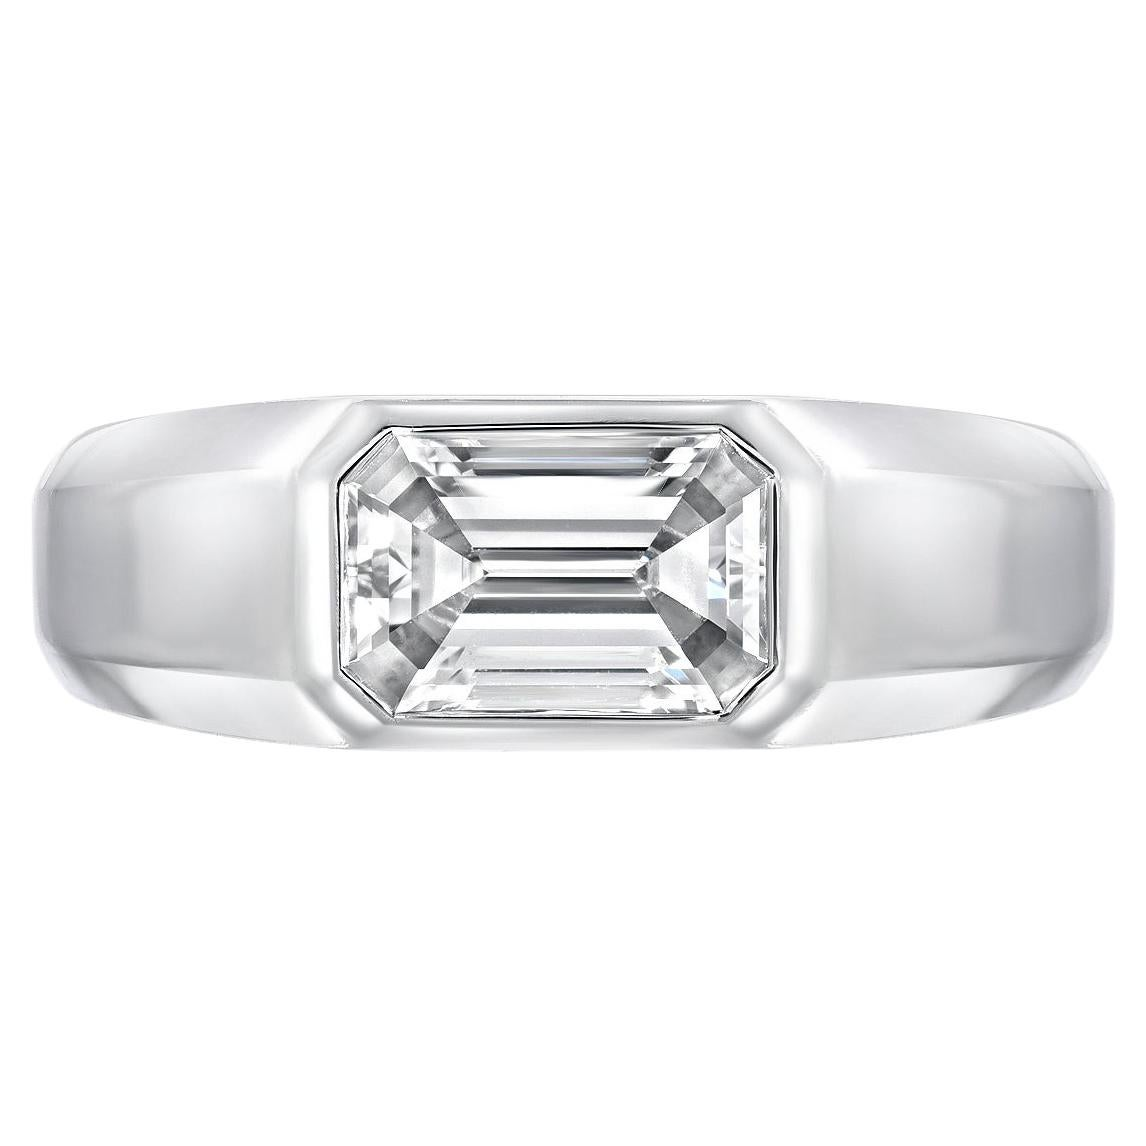 Diamond Ring Emerald Cut 1.70 Carat D Color VVS2 Clarity